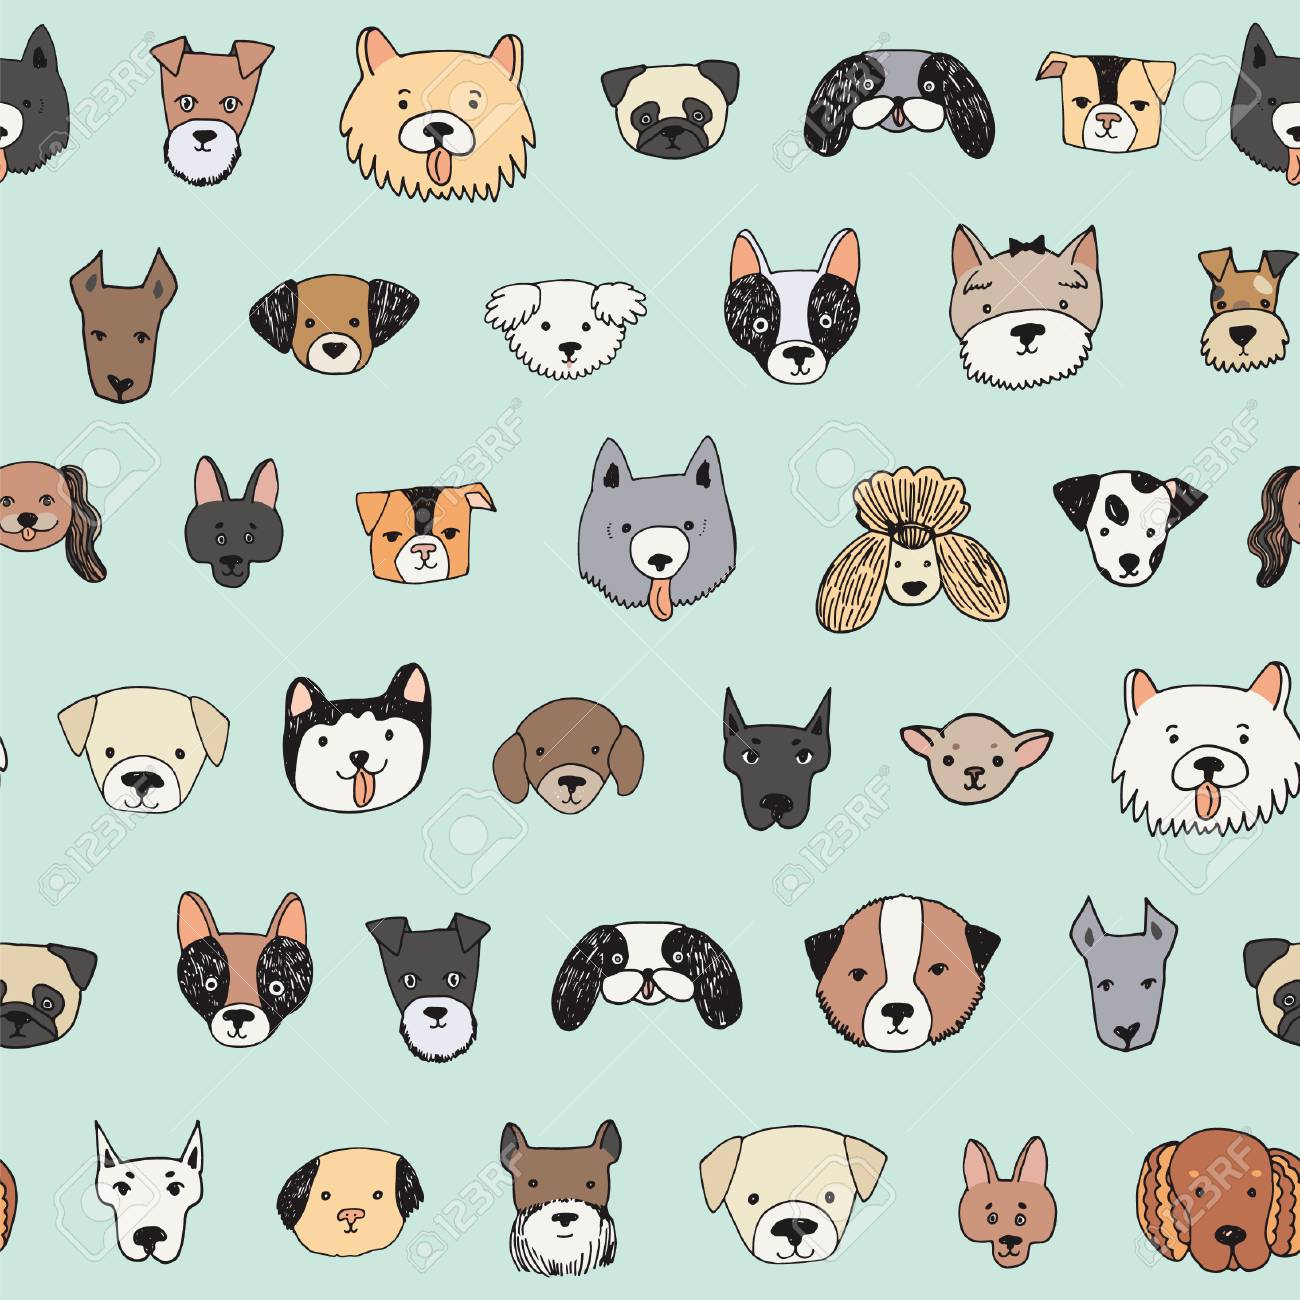 Dog Face Cartoon Vector Seamless Pattern Royalty Free Cliparts Vectors And Stock Illustration Image 93960762